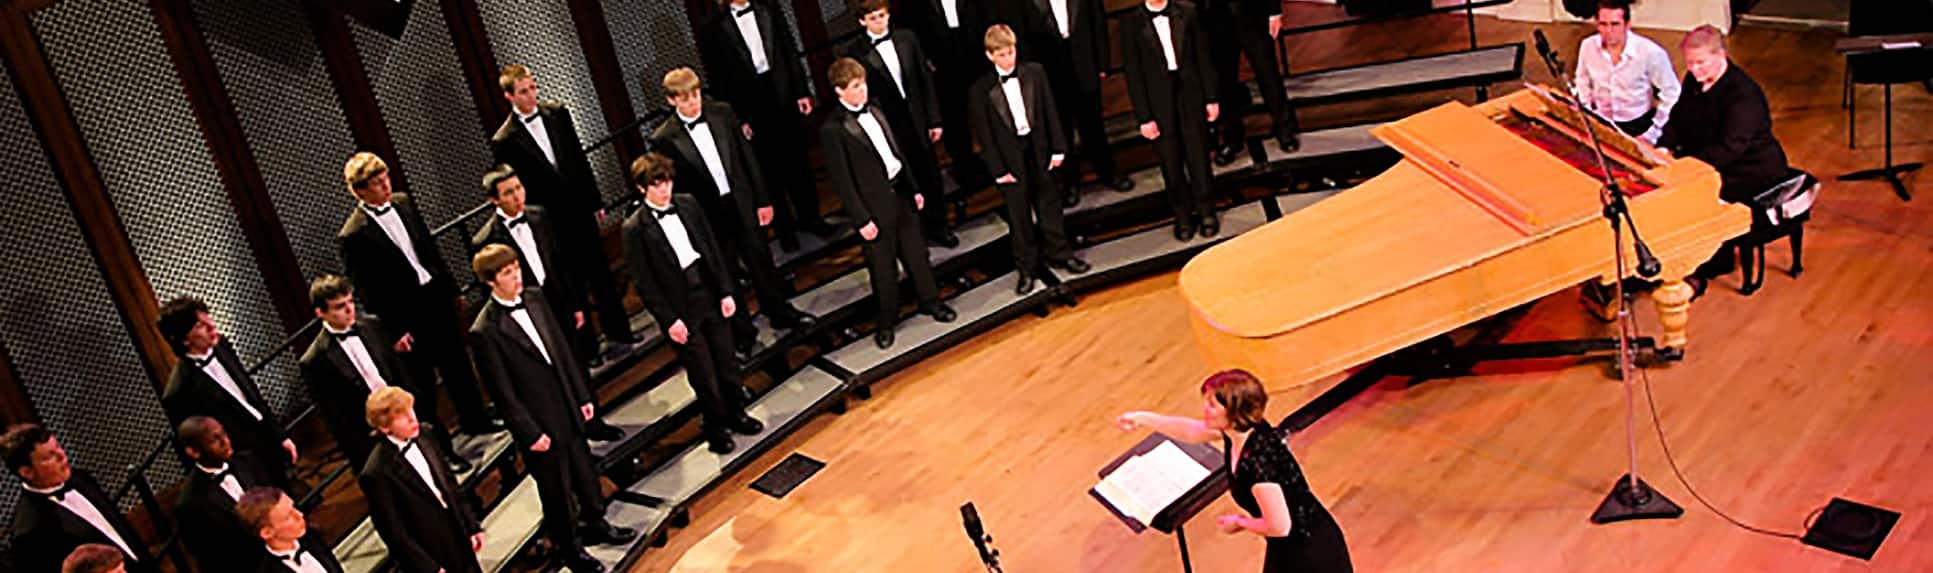 A choir of young adults dressed in tuxedos performing with piano accompaniment and a conductor